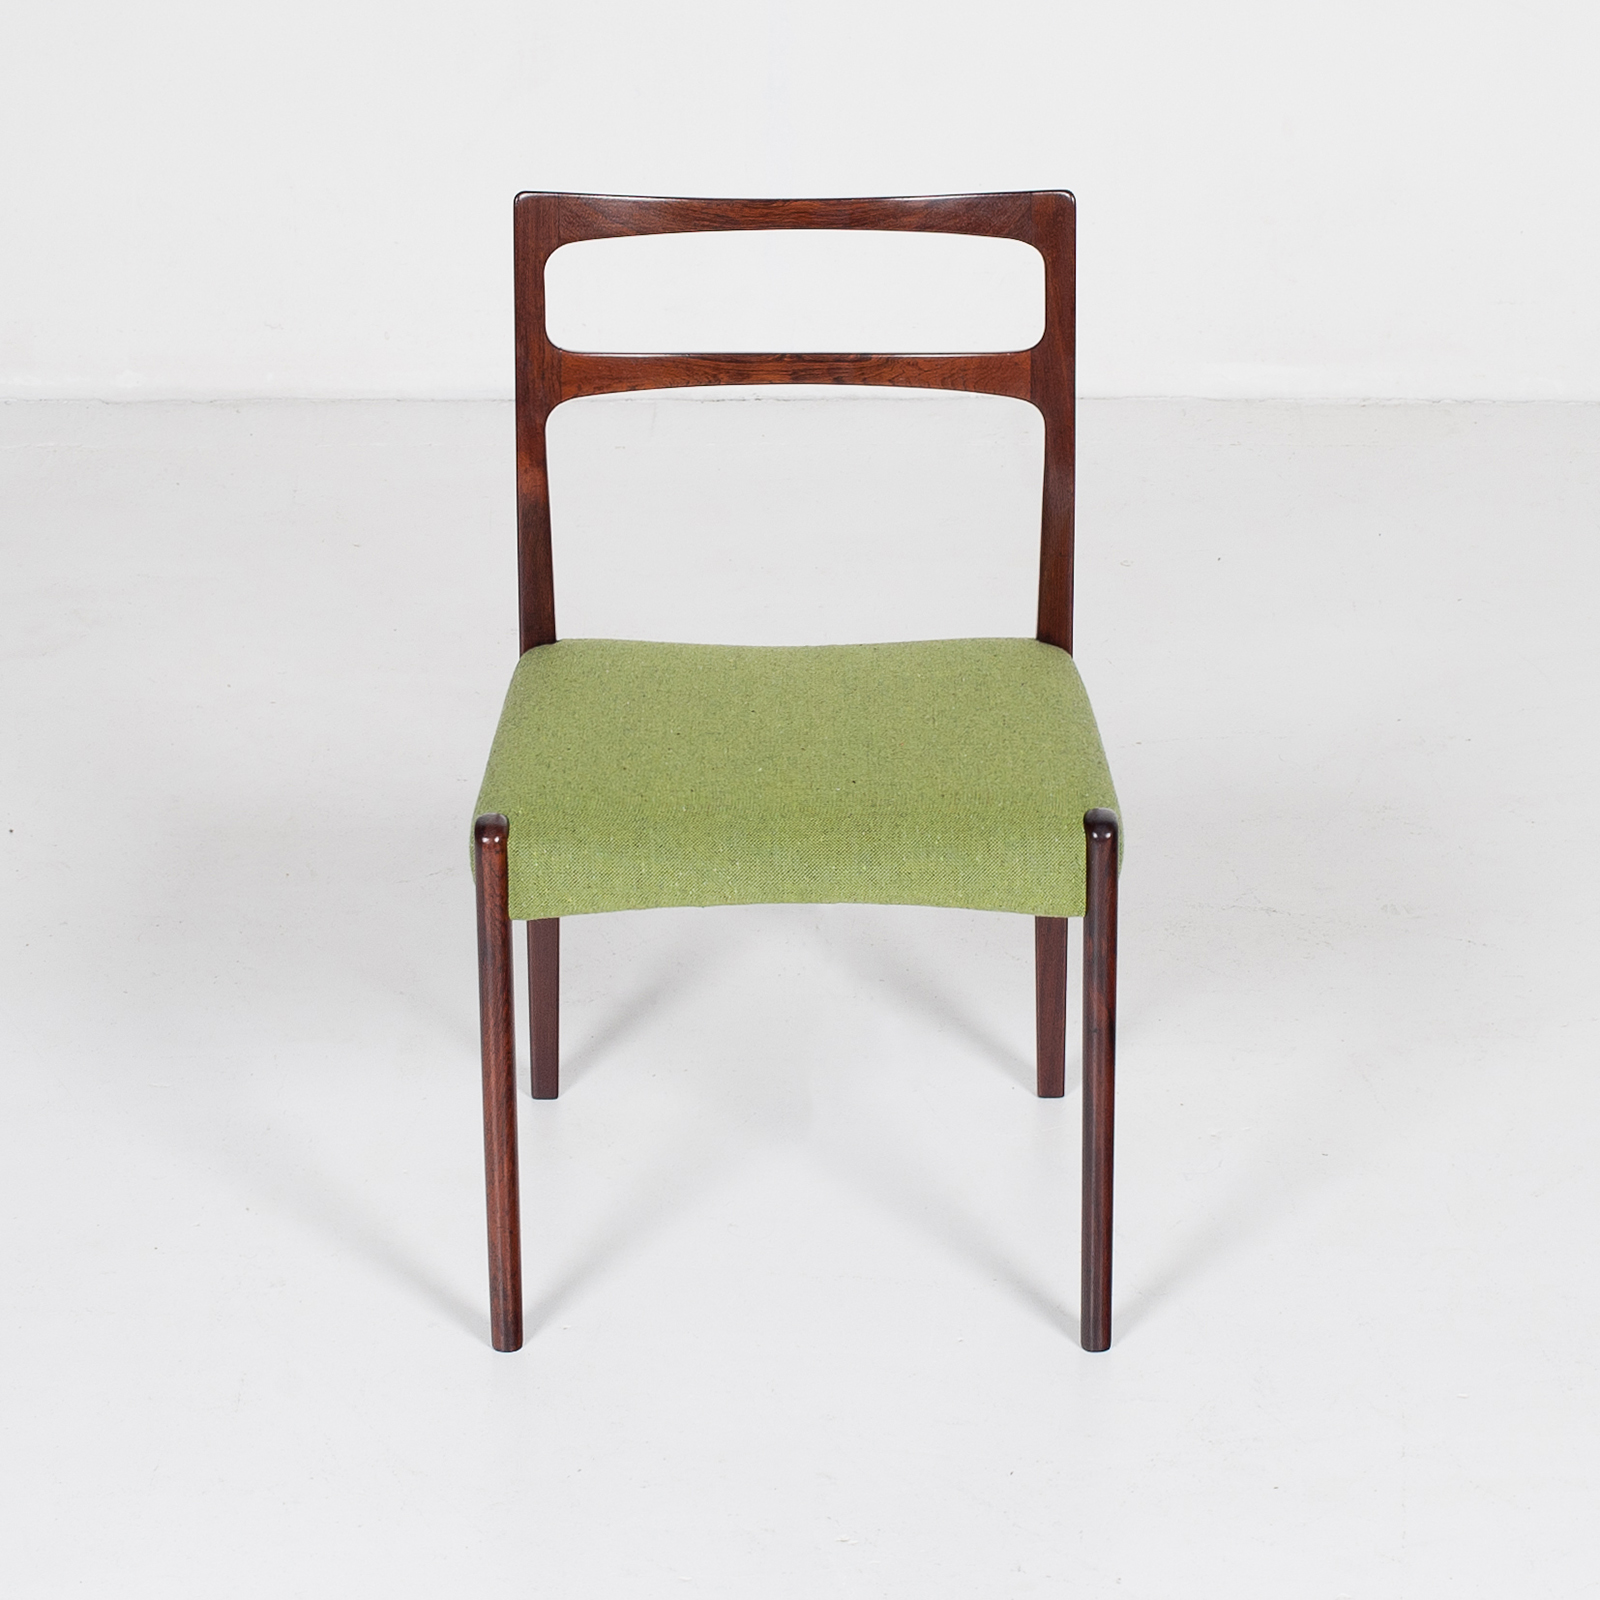 Set Of 4 Ladder Back Dining Chairs By Niels Moller In Rosewood, 1960s, Denmark25